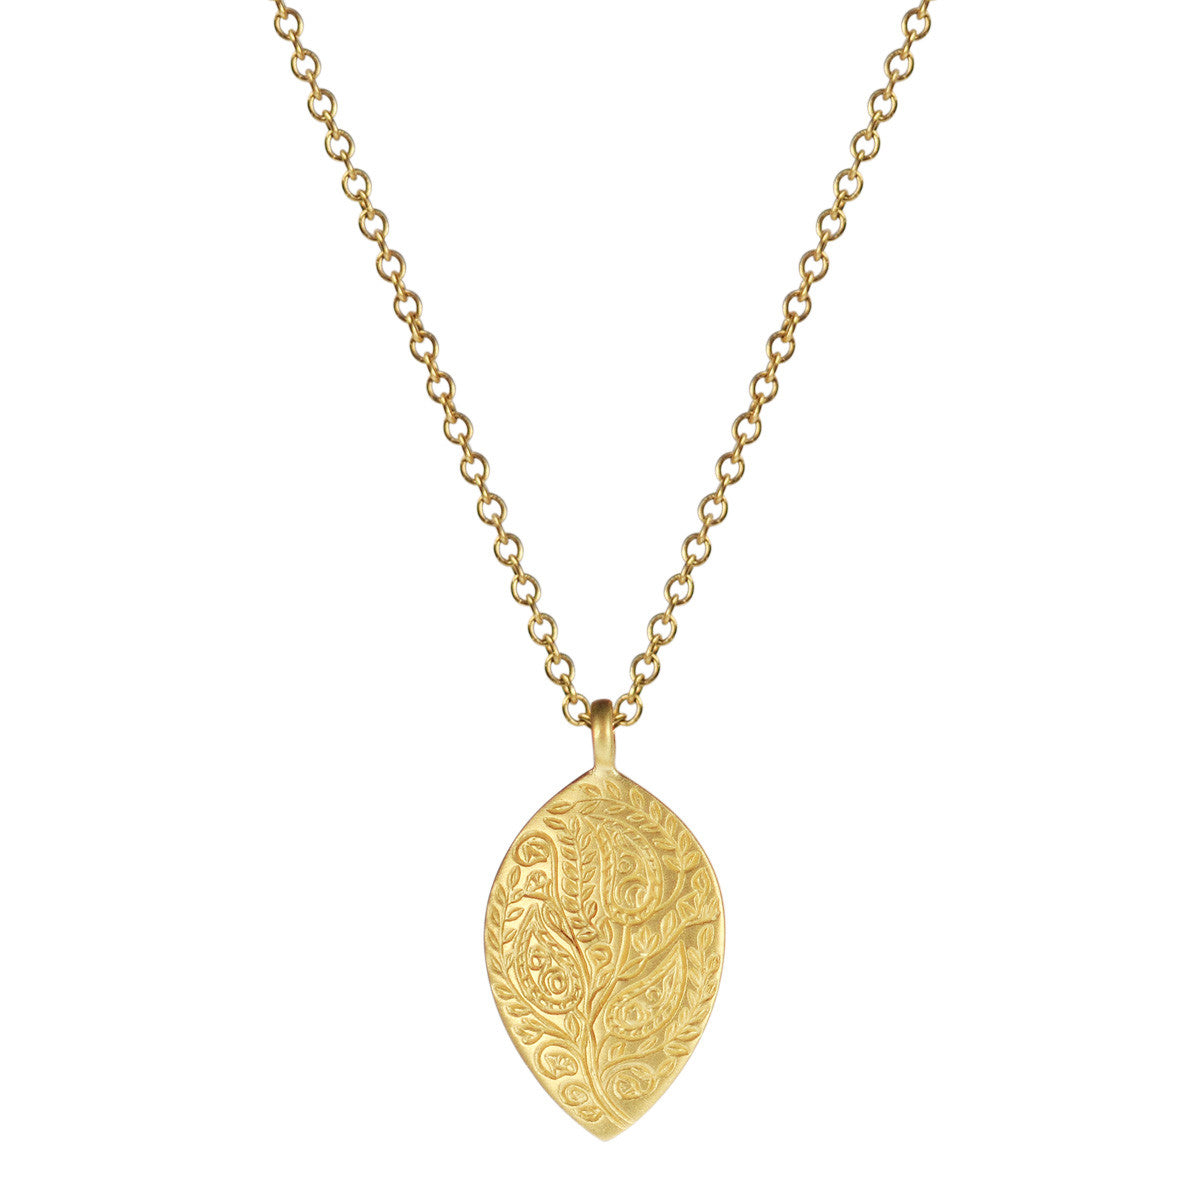 18K Gold Medium Engraved Paisley Pendant